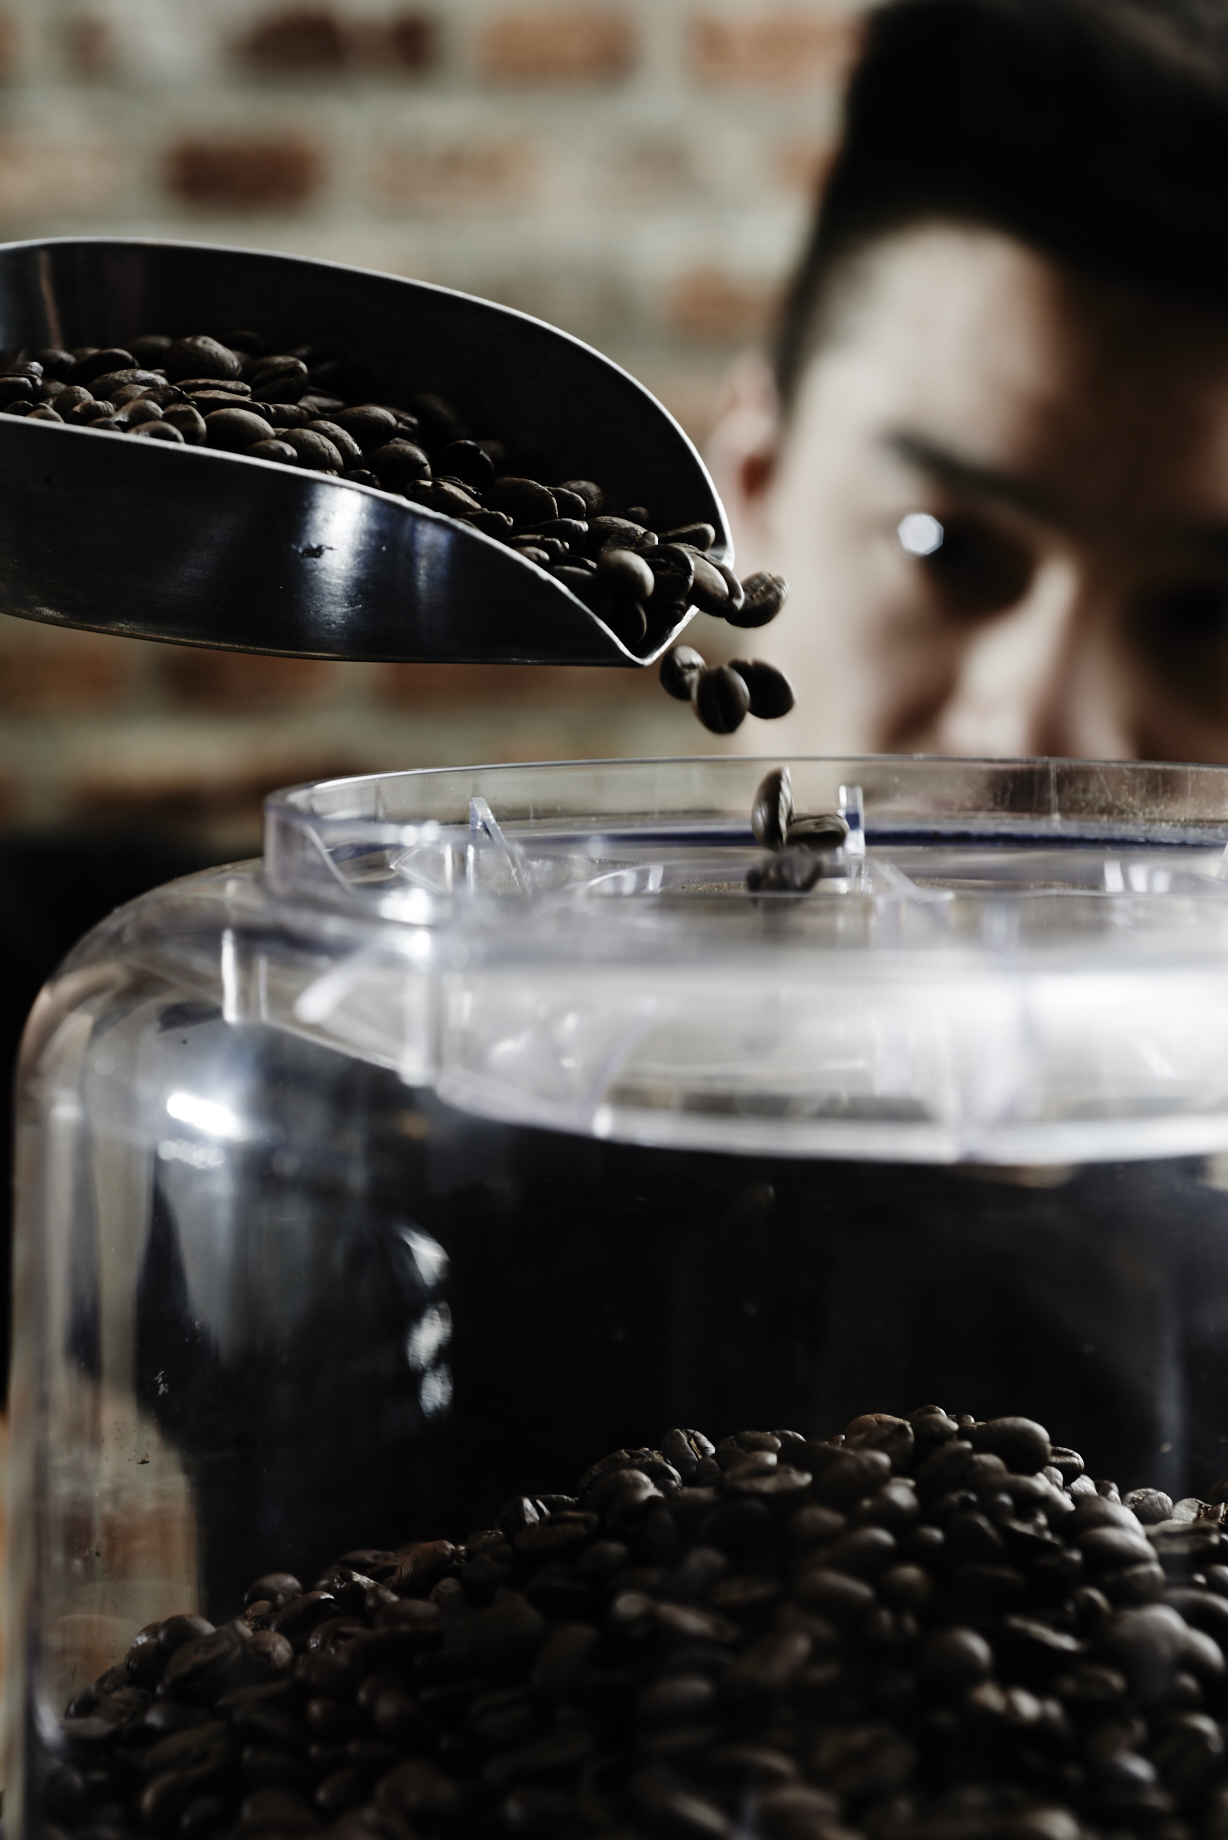 moody coffee being poured